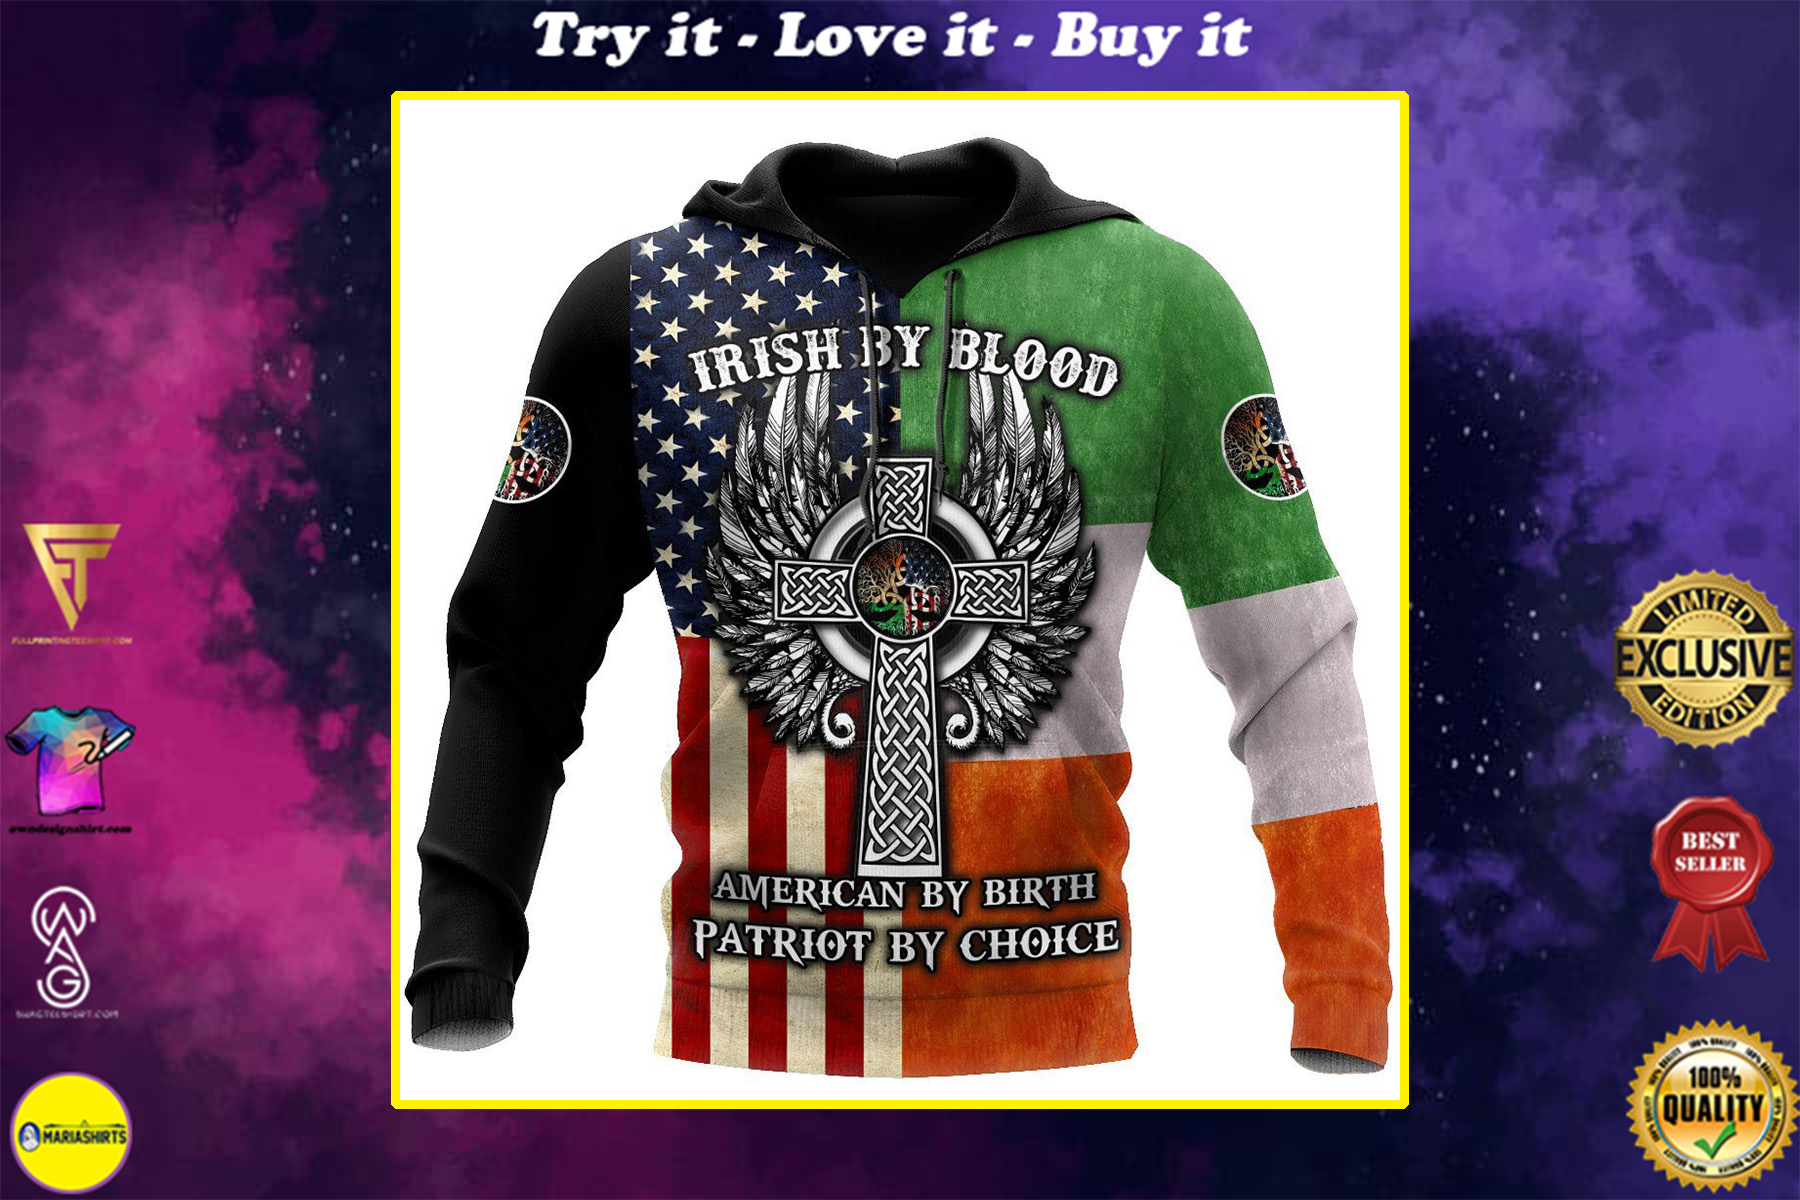 irish by blood american by birth patriot by choice the celtic cross shirt